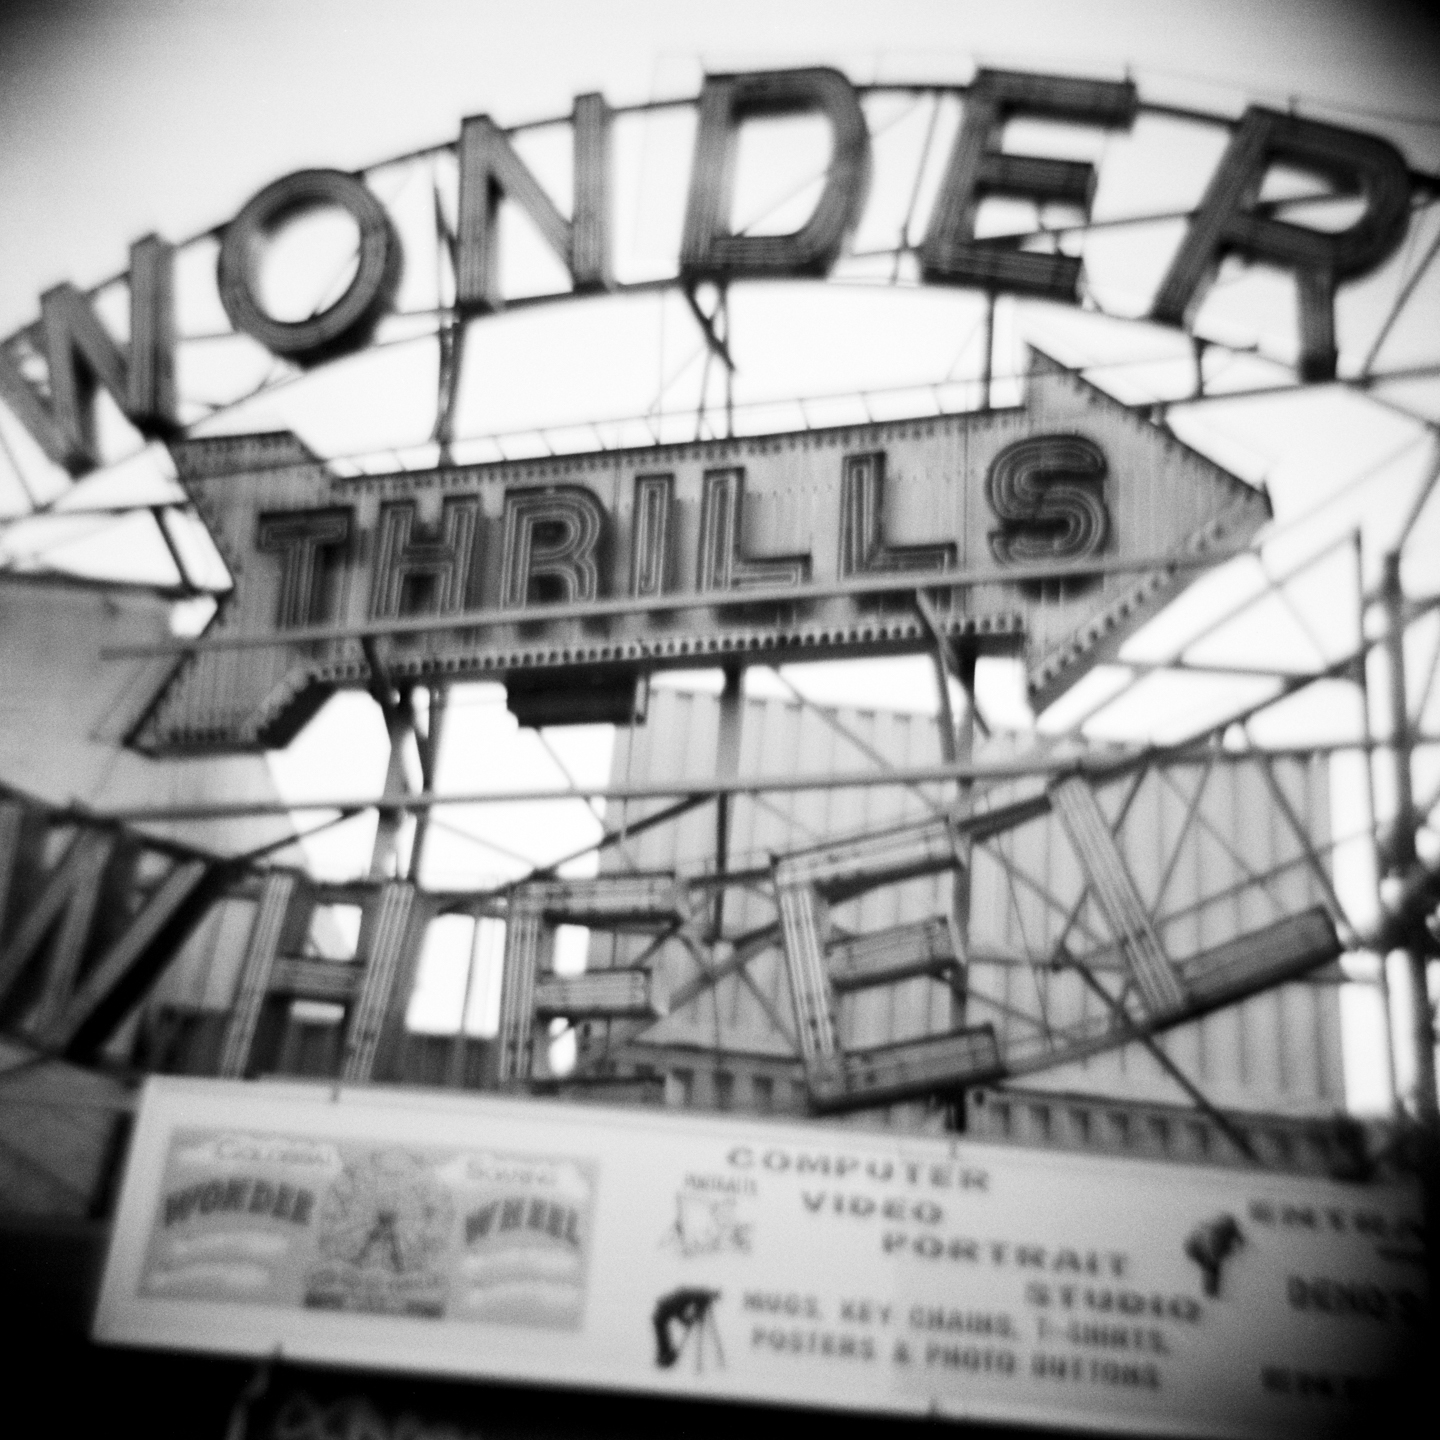 WONDER THRILLS